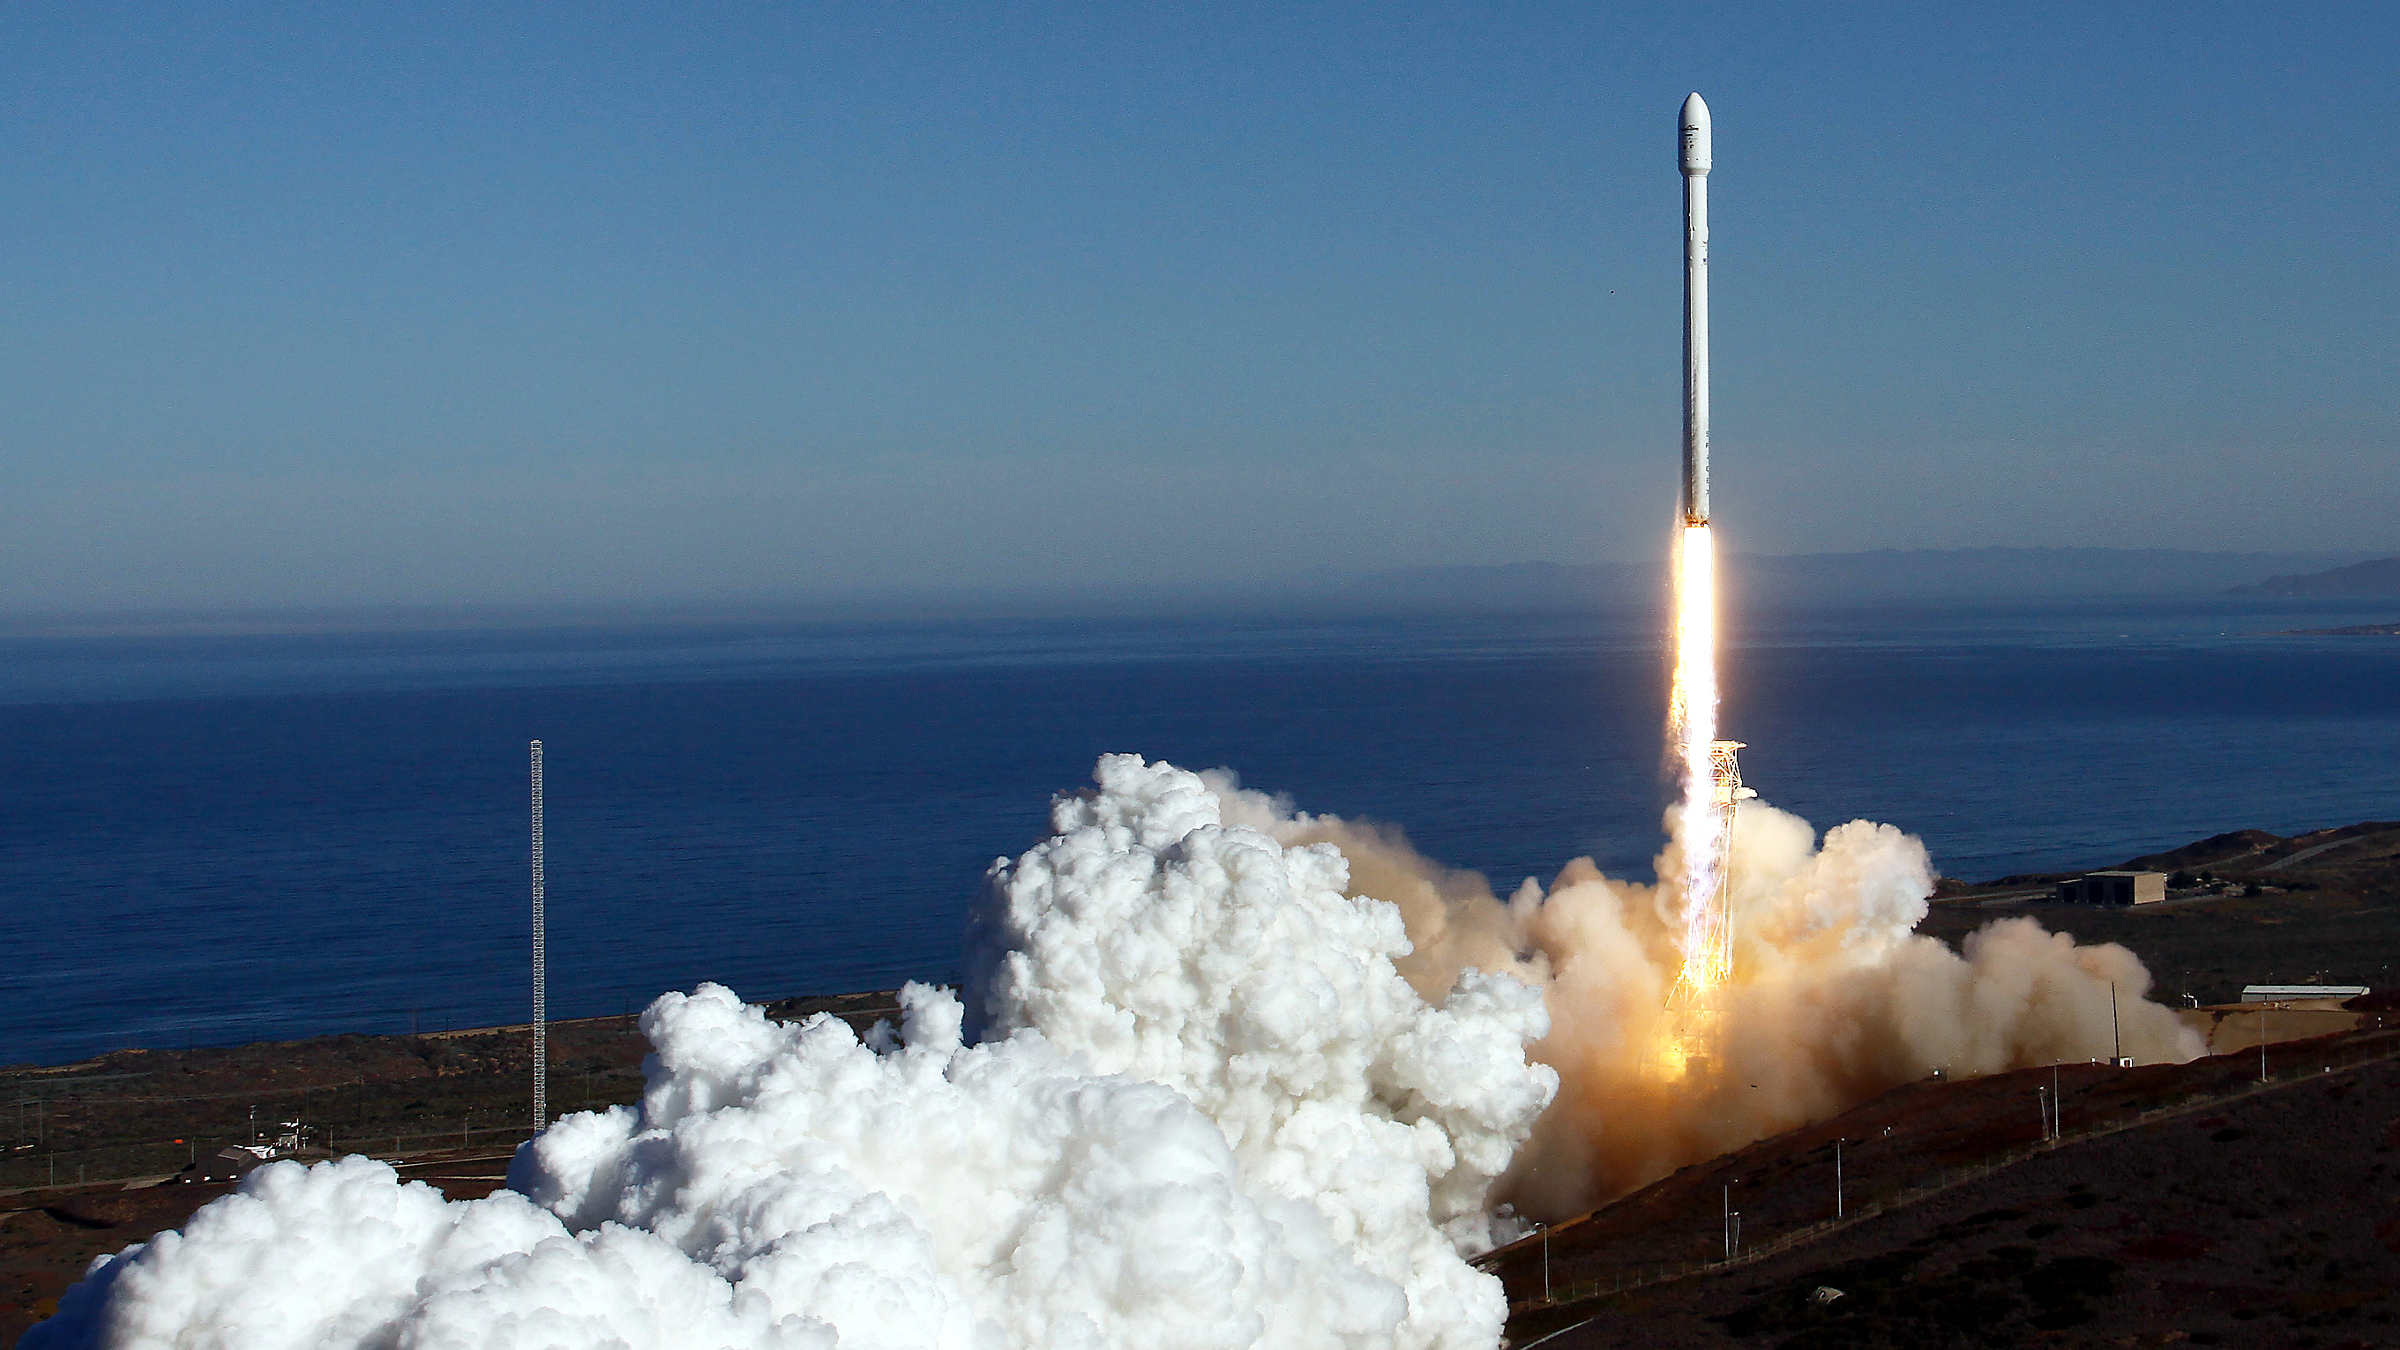 A Falcon 9 rocket carrying a small science satellite for Canada is seen as it is launched from a newly refurbished launch pad in Vandenberg Air Force Station September 29, 2013. The unmanned rocket blasted off from California on Sunday to test upgrades needed for planned commercial launch services. The 22-story rocket, built and flown by Space Exploration Technologies, or SpaceX, soared off a newly refurbished, leased launch pad at Vandenberg Air Force Station at noon EDT/1600 GMT (05.00 p.m. British time).